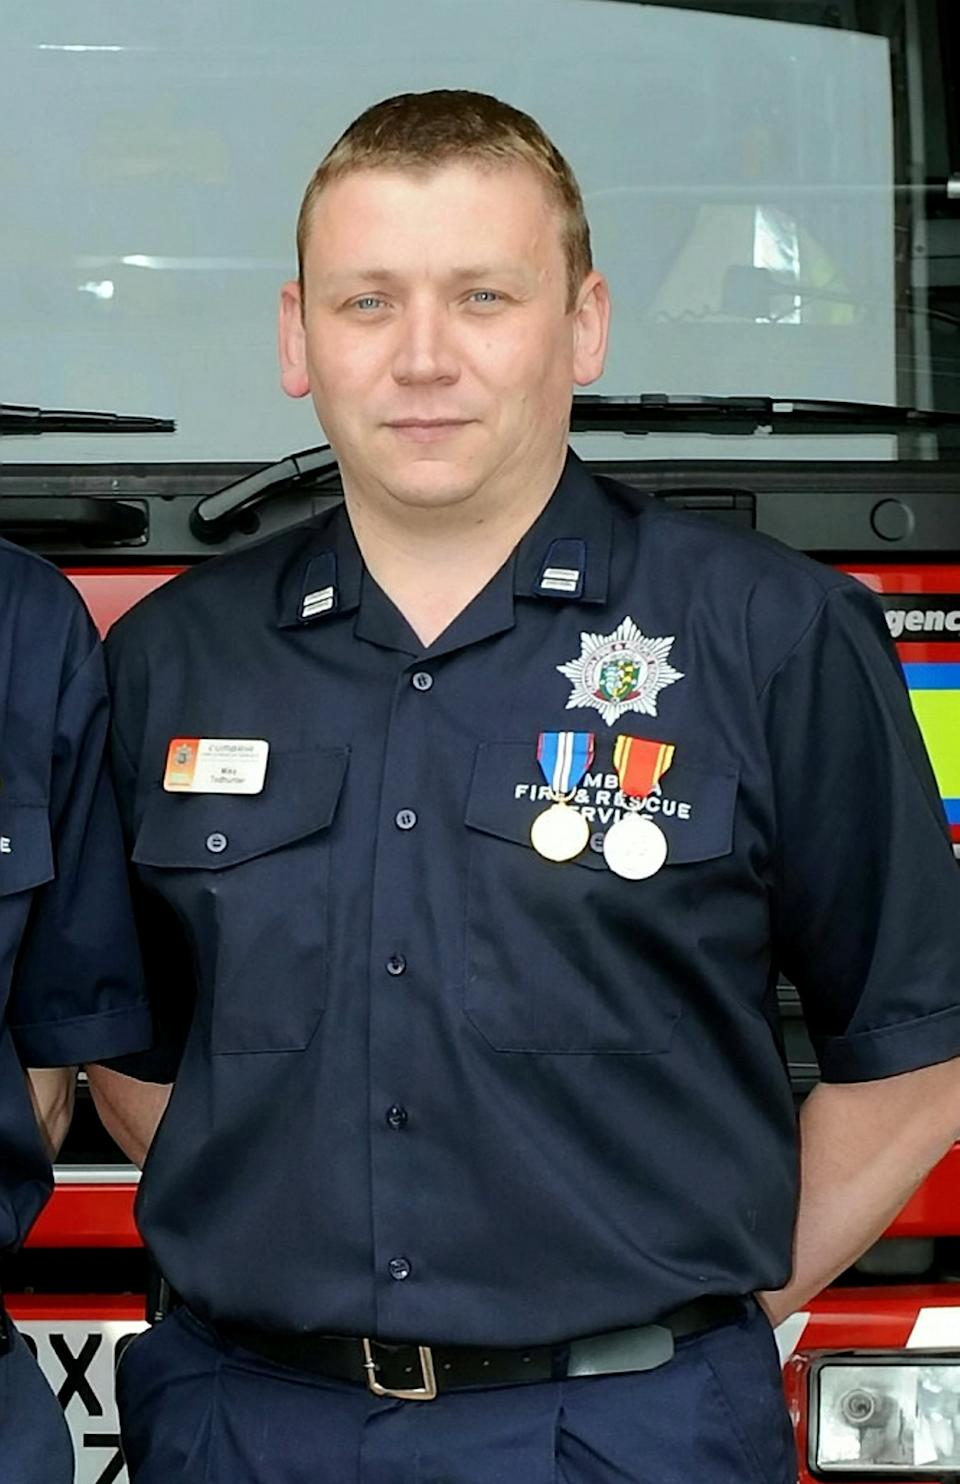 Todhunter, 50, had served with Cumbria Fire and Rescue Service for more than 30 years. (SWNS)